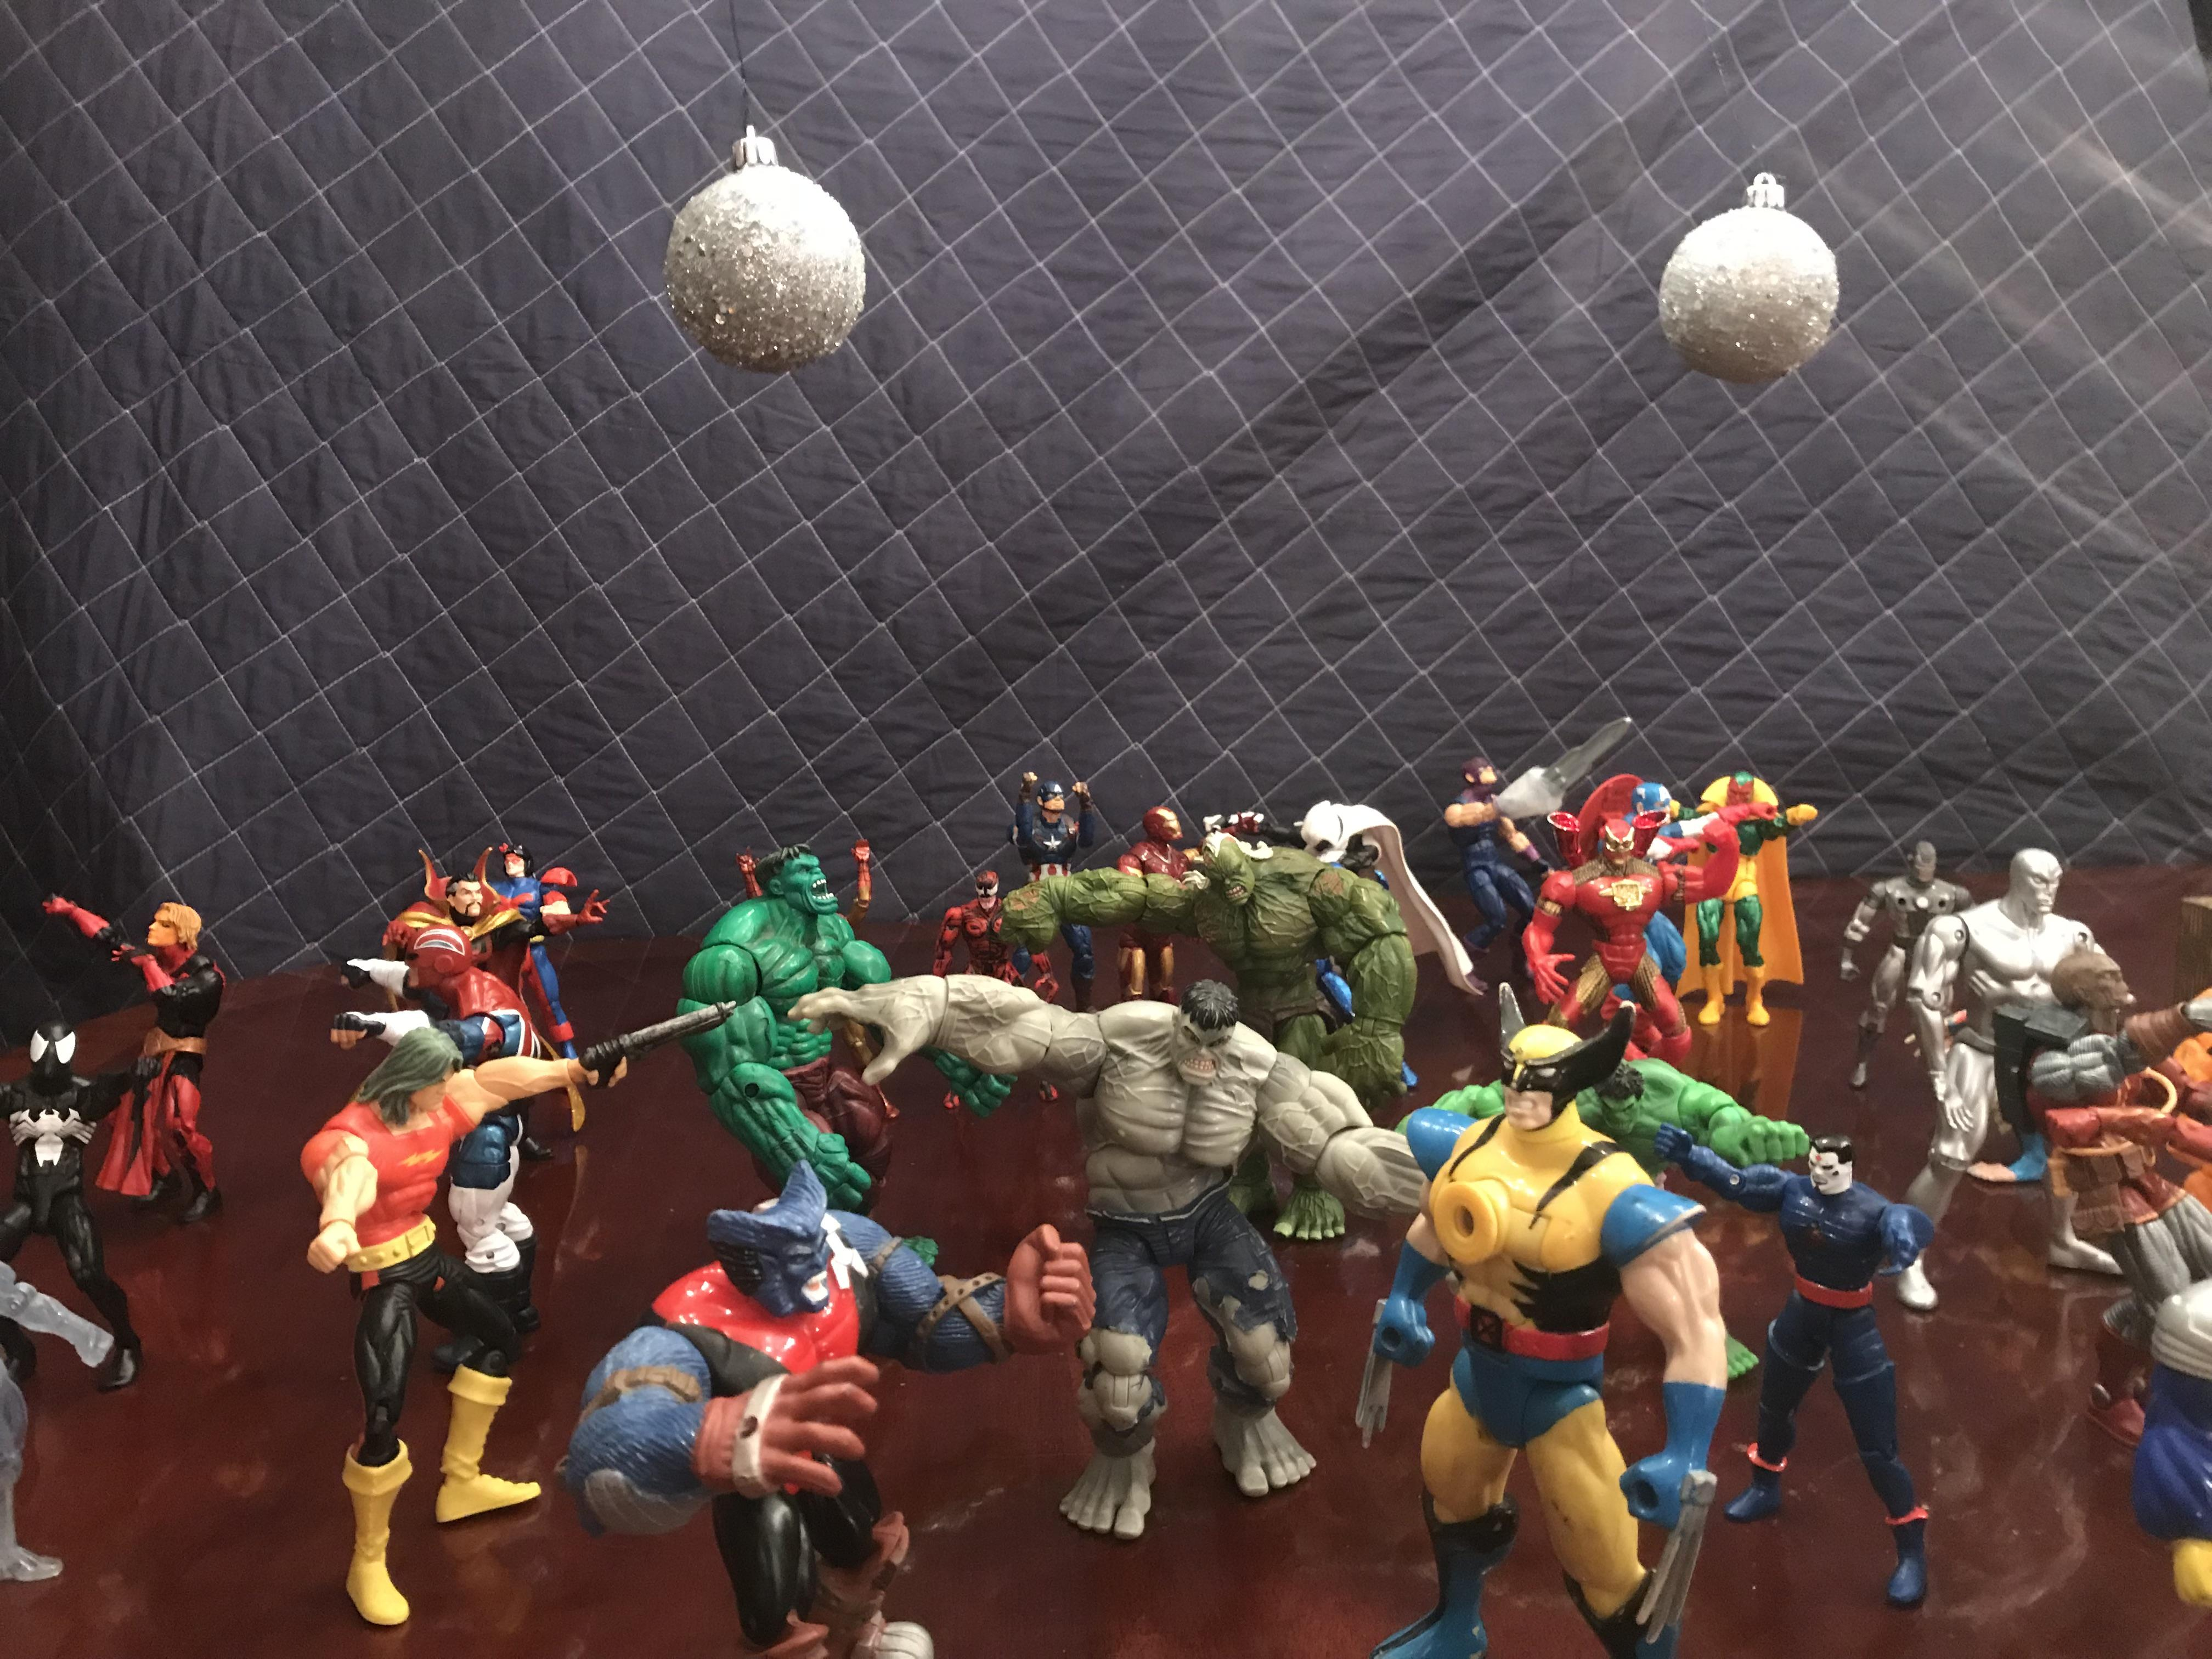 When you go to sleep, this is what action figures do